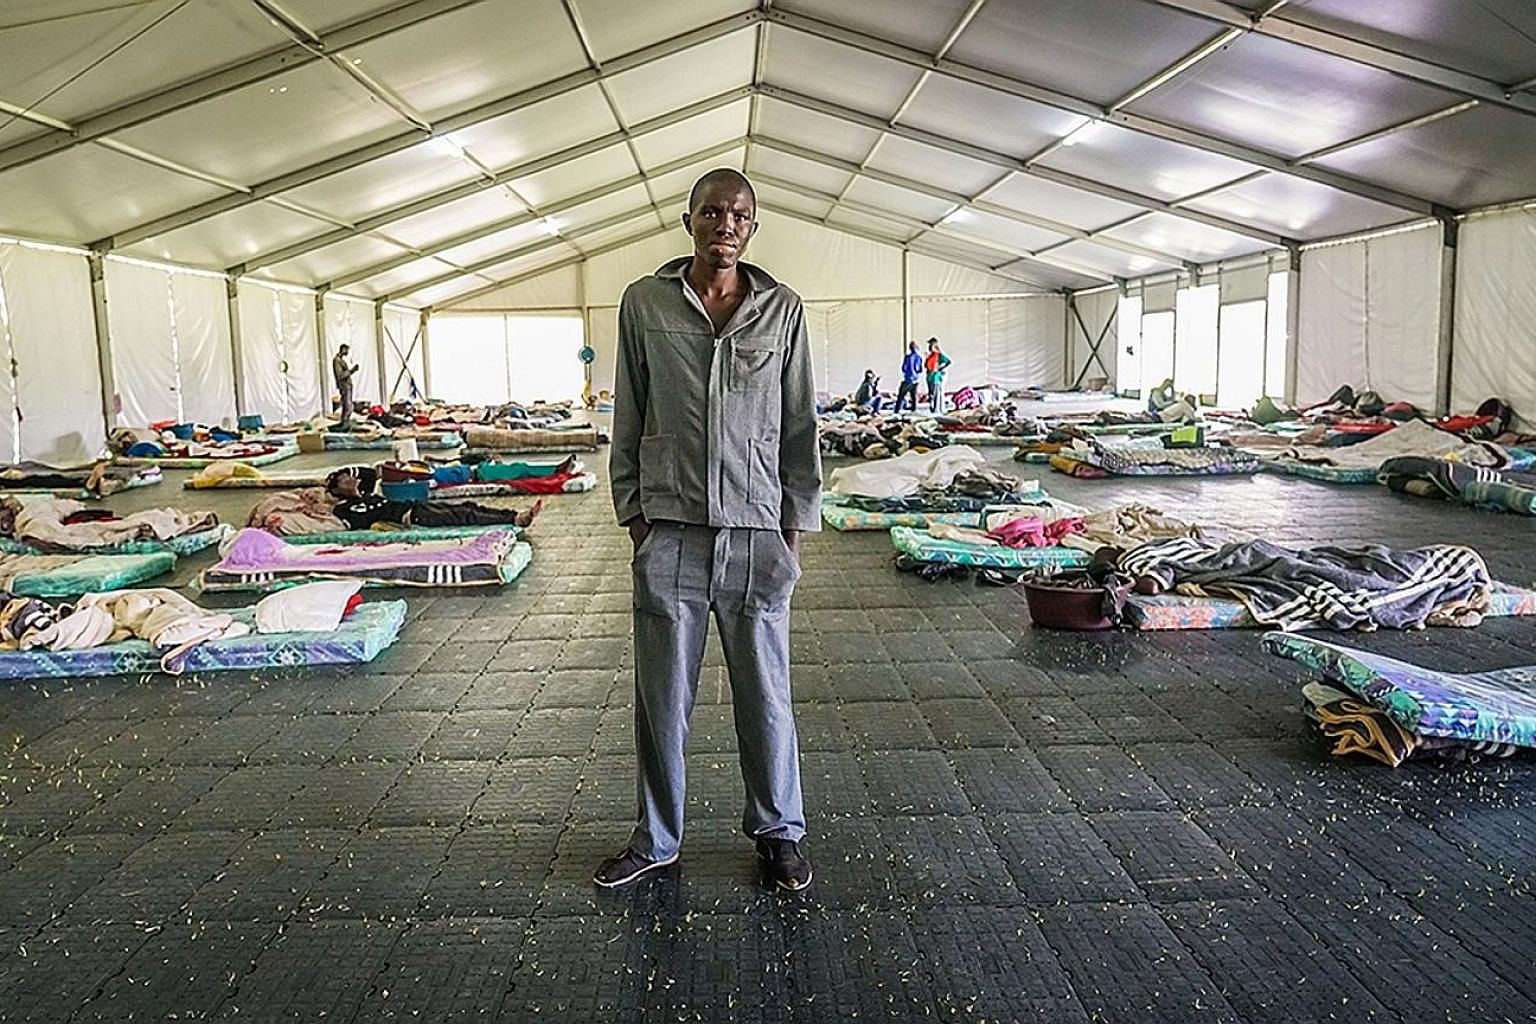 Mr Neo Letlape, who began experimenting with drugs at 17 and has been living on the streets for over five years, was put in a temporary shelter at the Lyttelton sports club when South Africa went into lockdown in March.